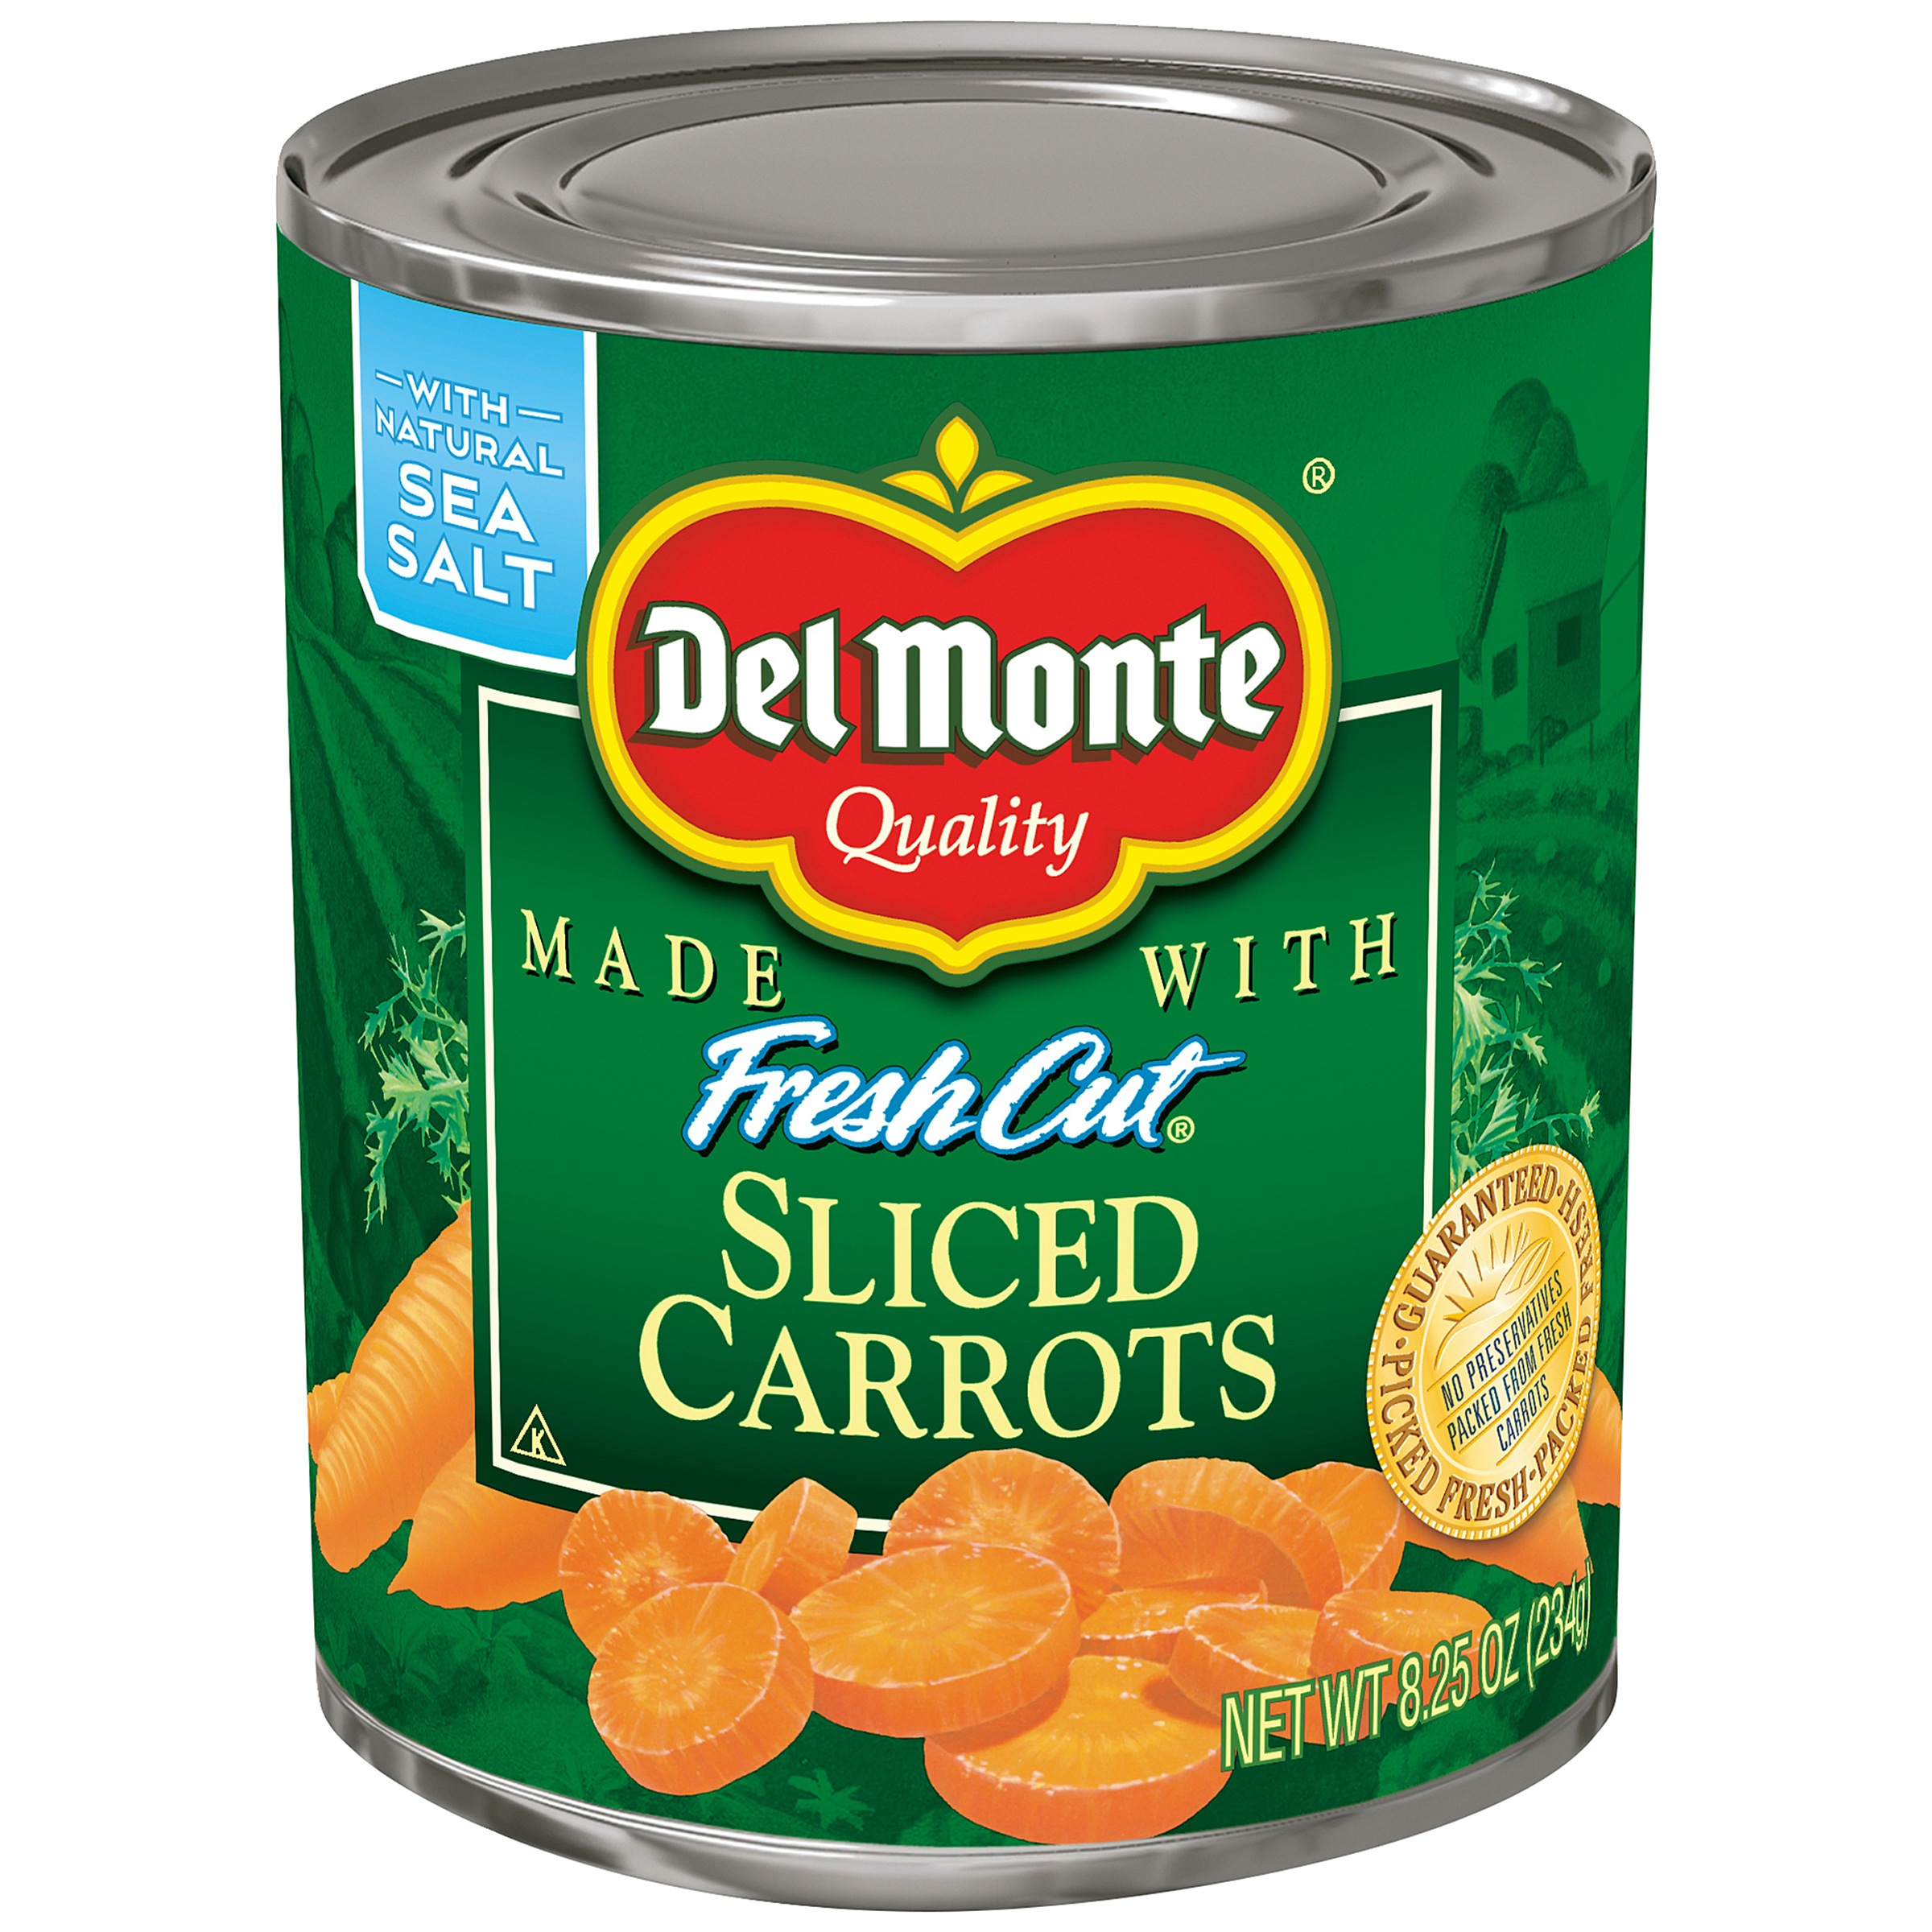 Del Monte Fresh Cut Sliced Carrots, 8.25 Oz